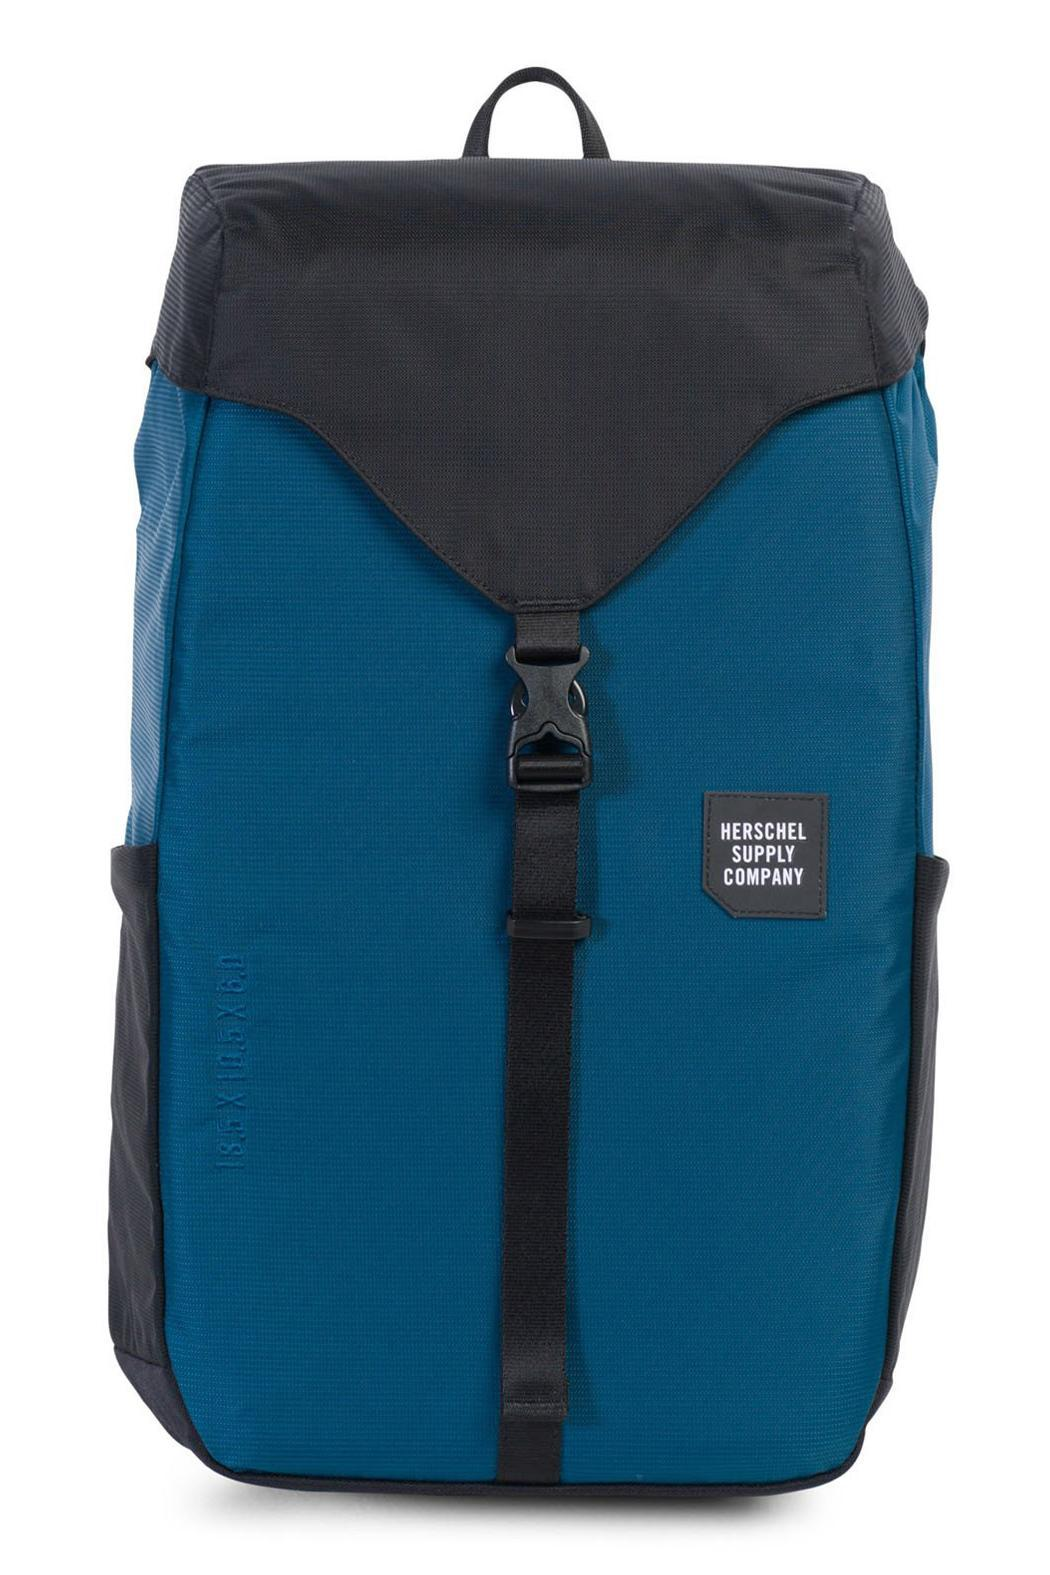 Herschel Supply Co. Herschel Barlow Backpack - Main Image